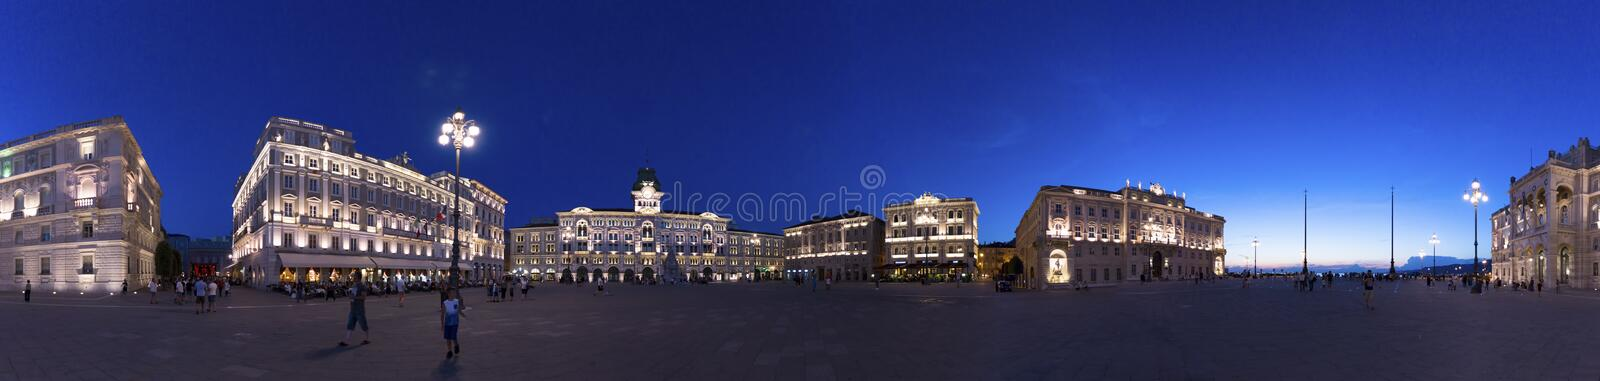 Panoramic photograph of Piazza Unità d`Italia at dusk at blue hour, Trieste, Italy. Panoramic photograph of the Unity Square in Italy Piazza Unità d`Italia stock photo